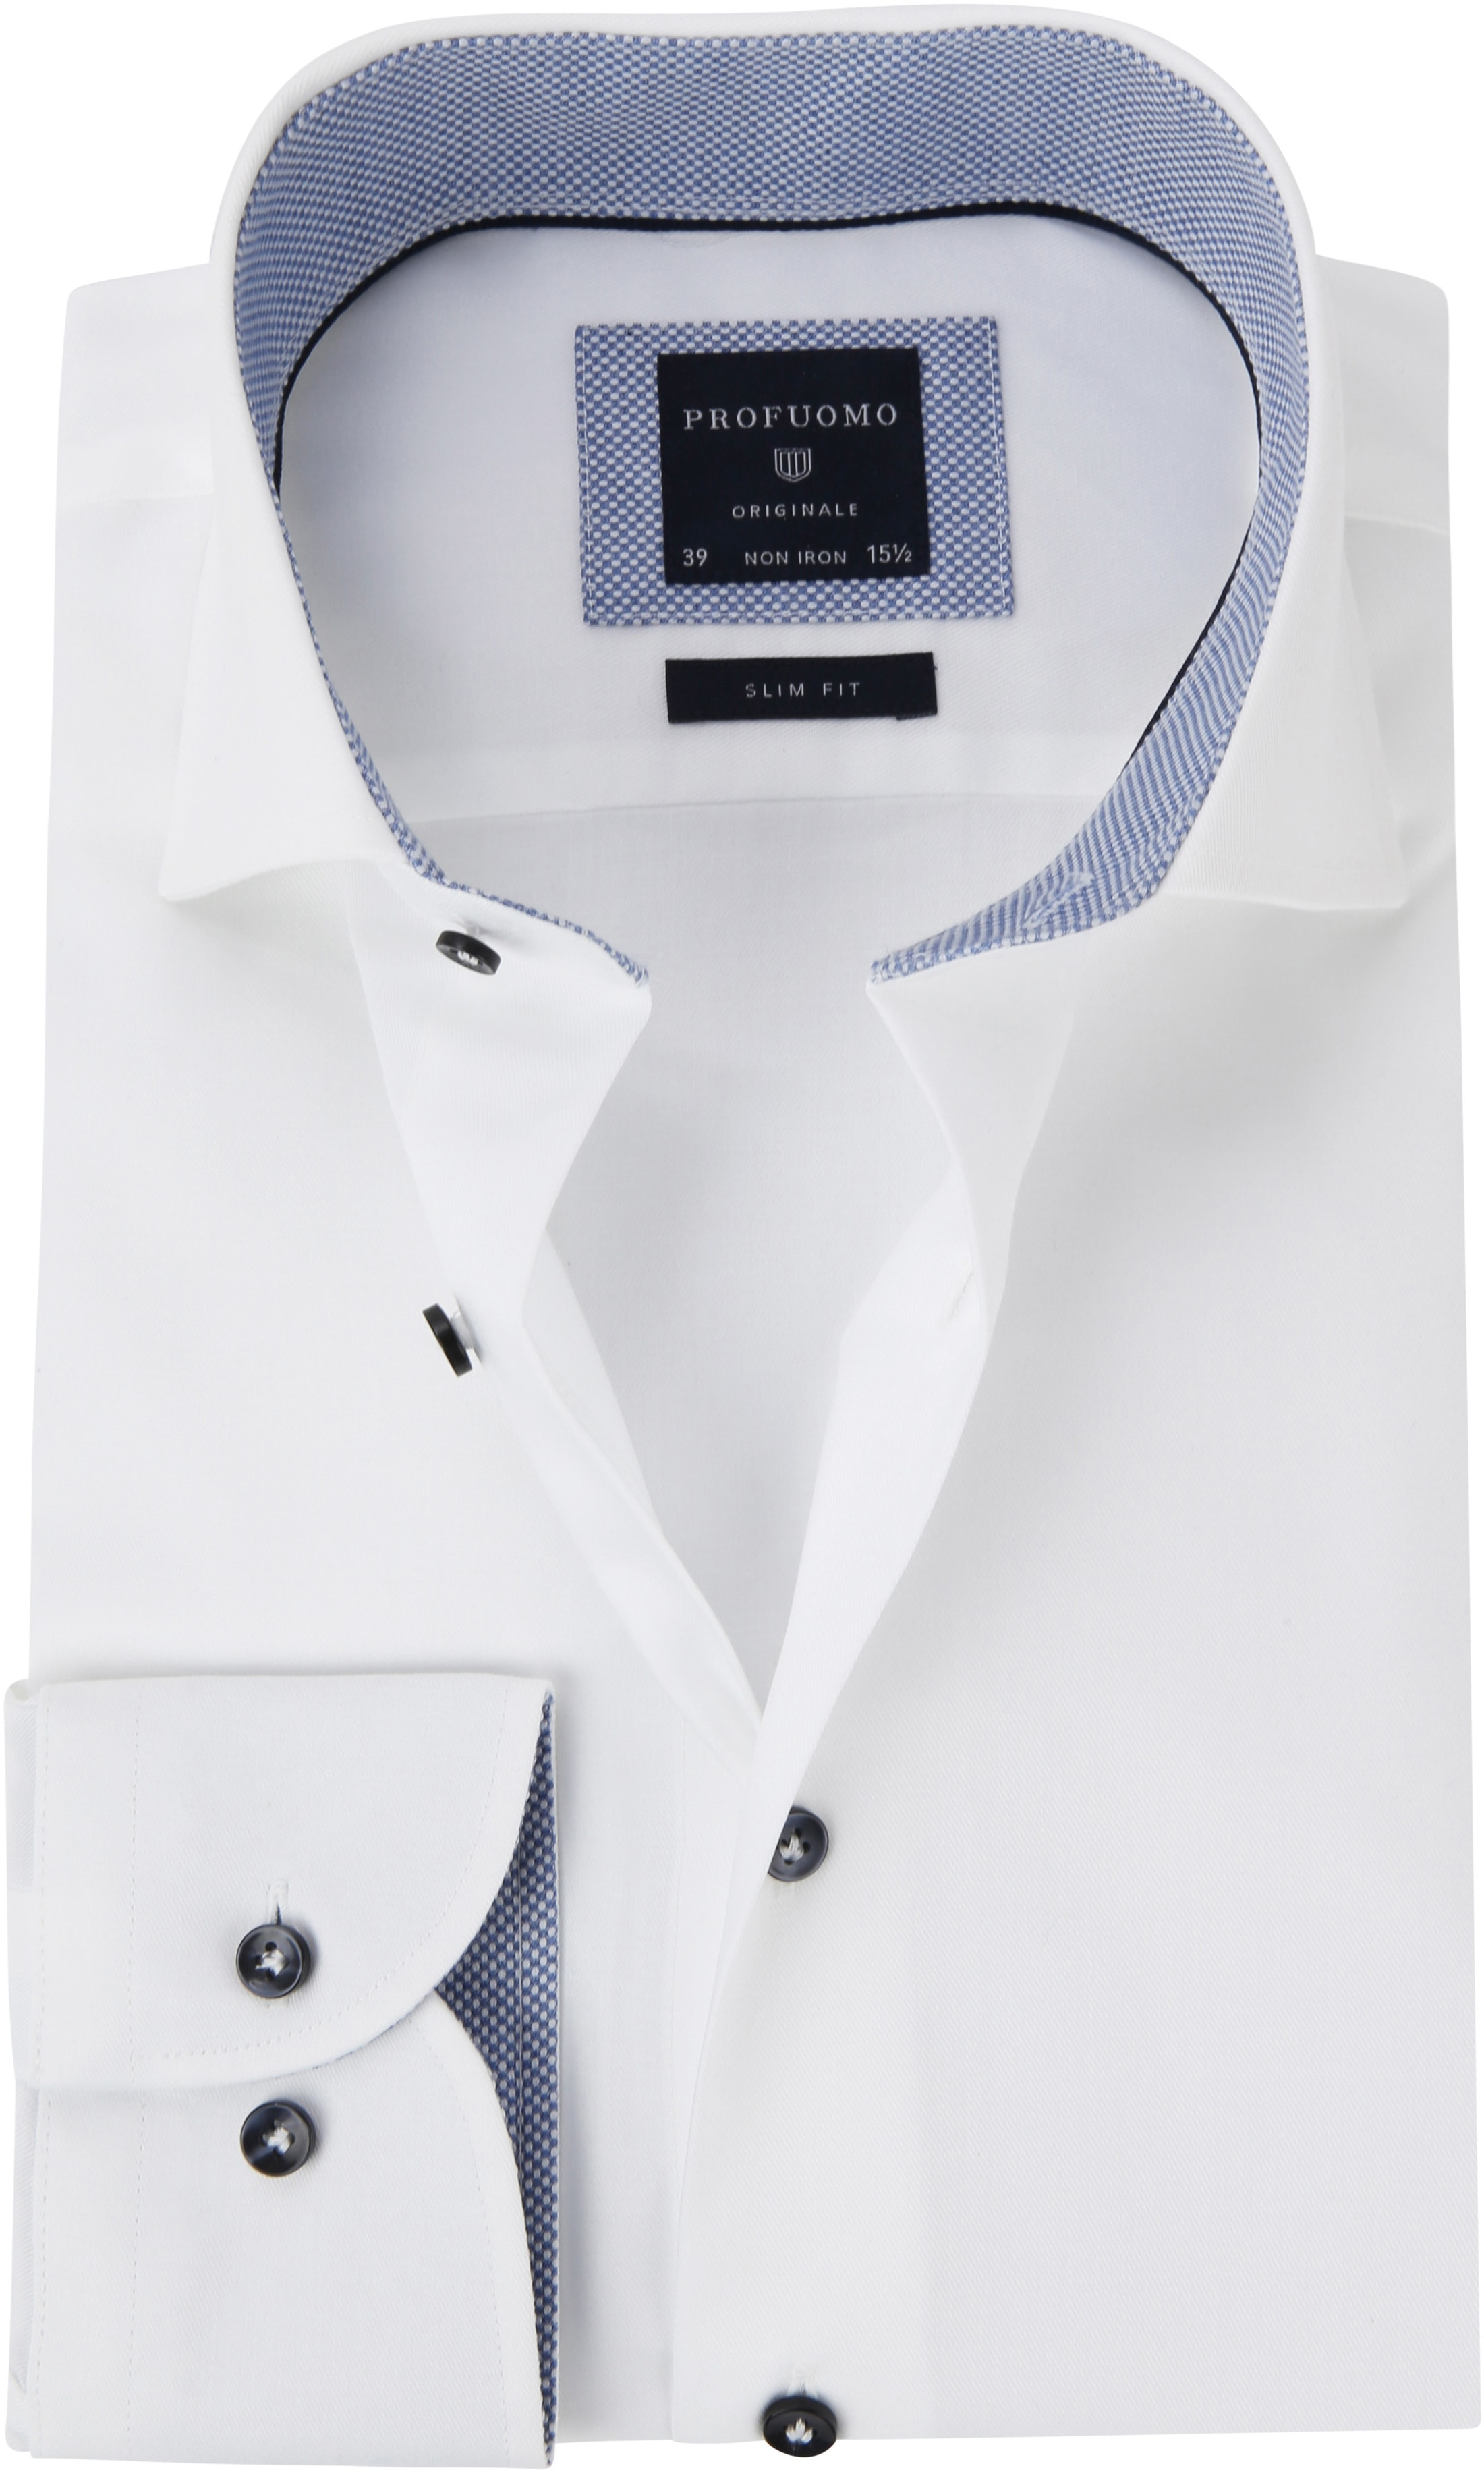 Profuomo Shirt White Fine Twill CAW photo 0